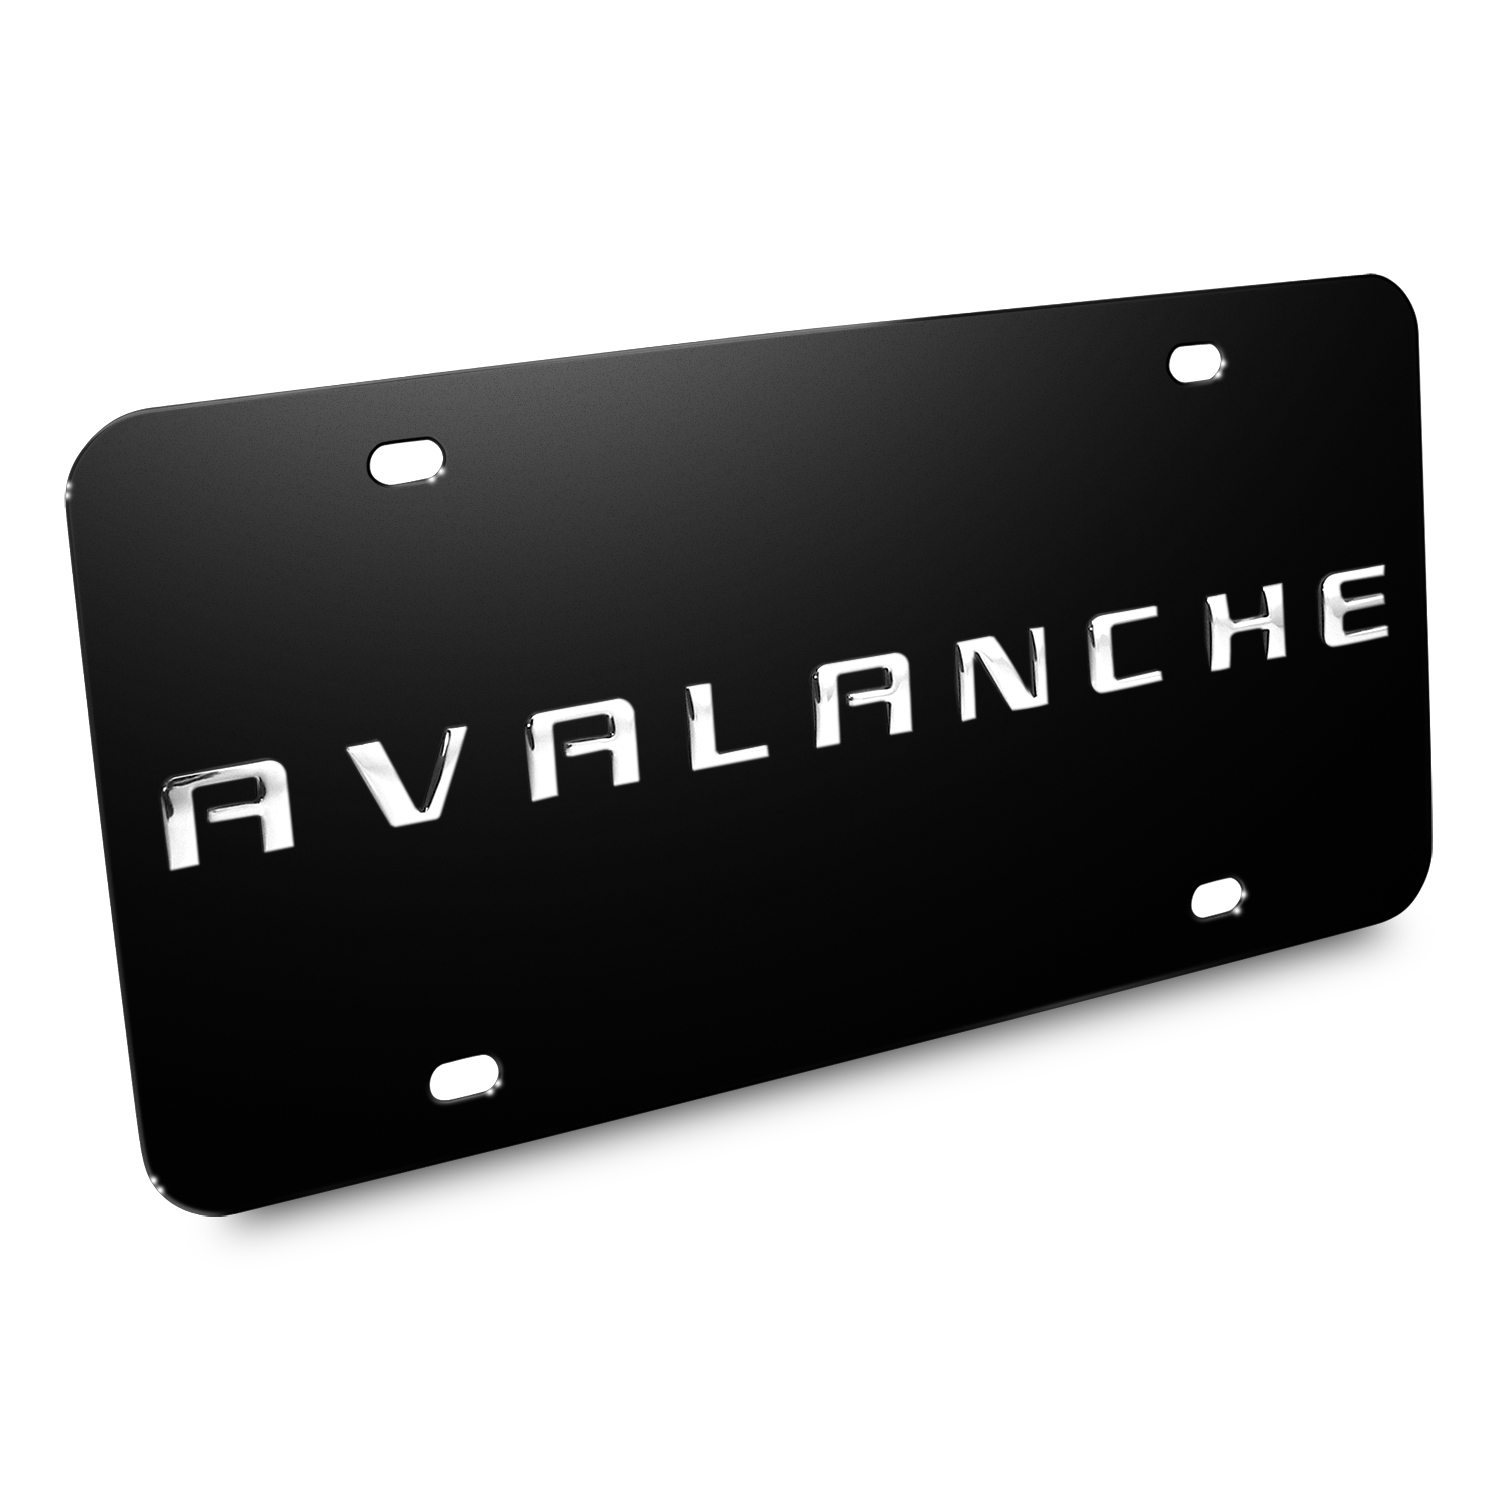 Chevrolet Avalanche Nameplate 3D Logo Black Stainless Steel License Plate